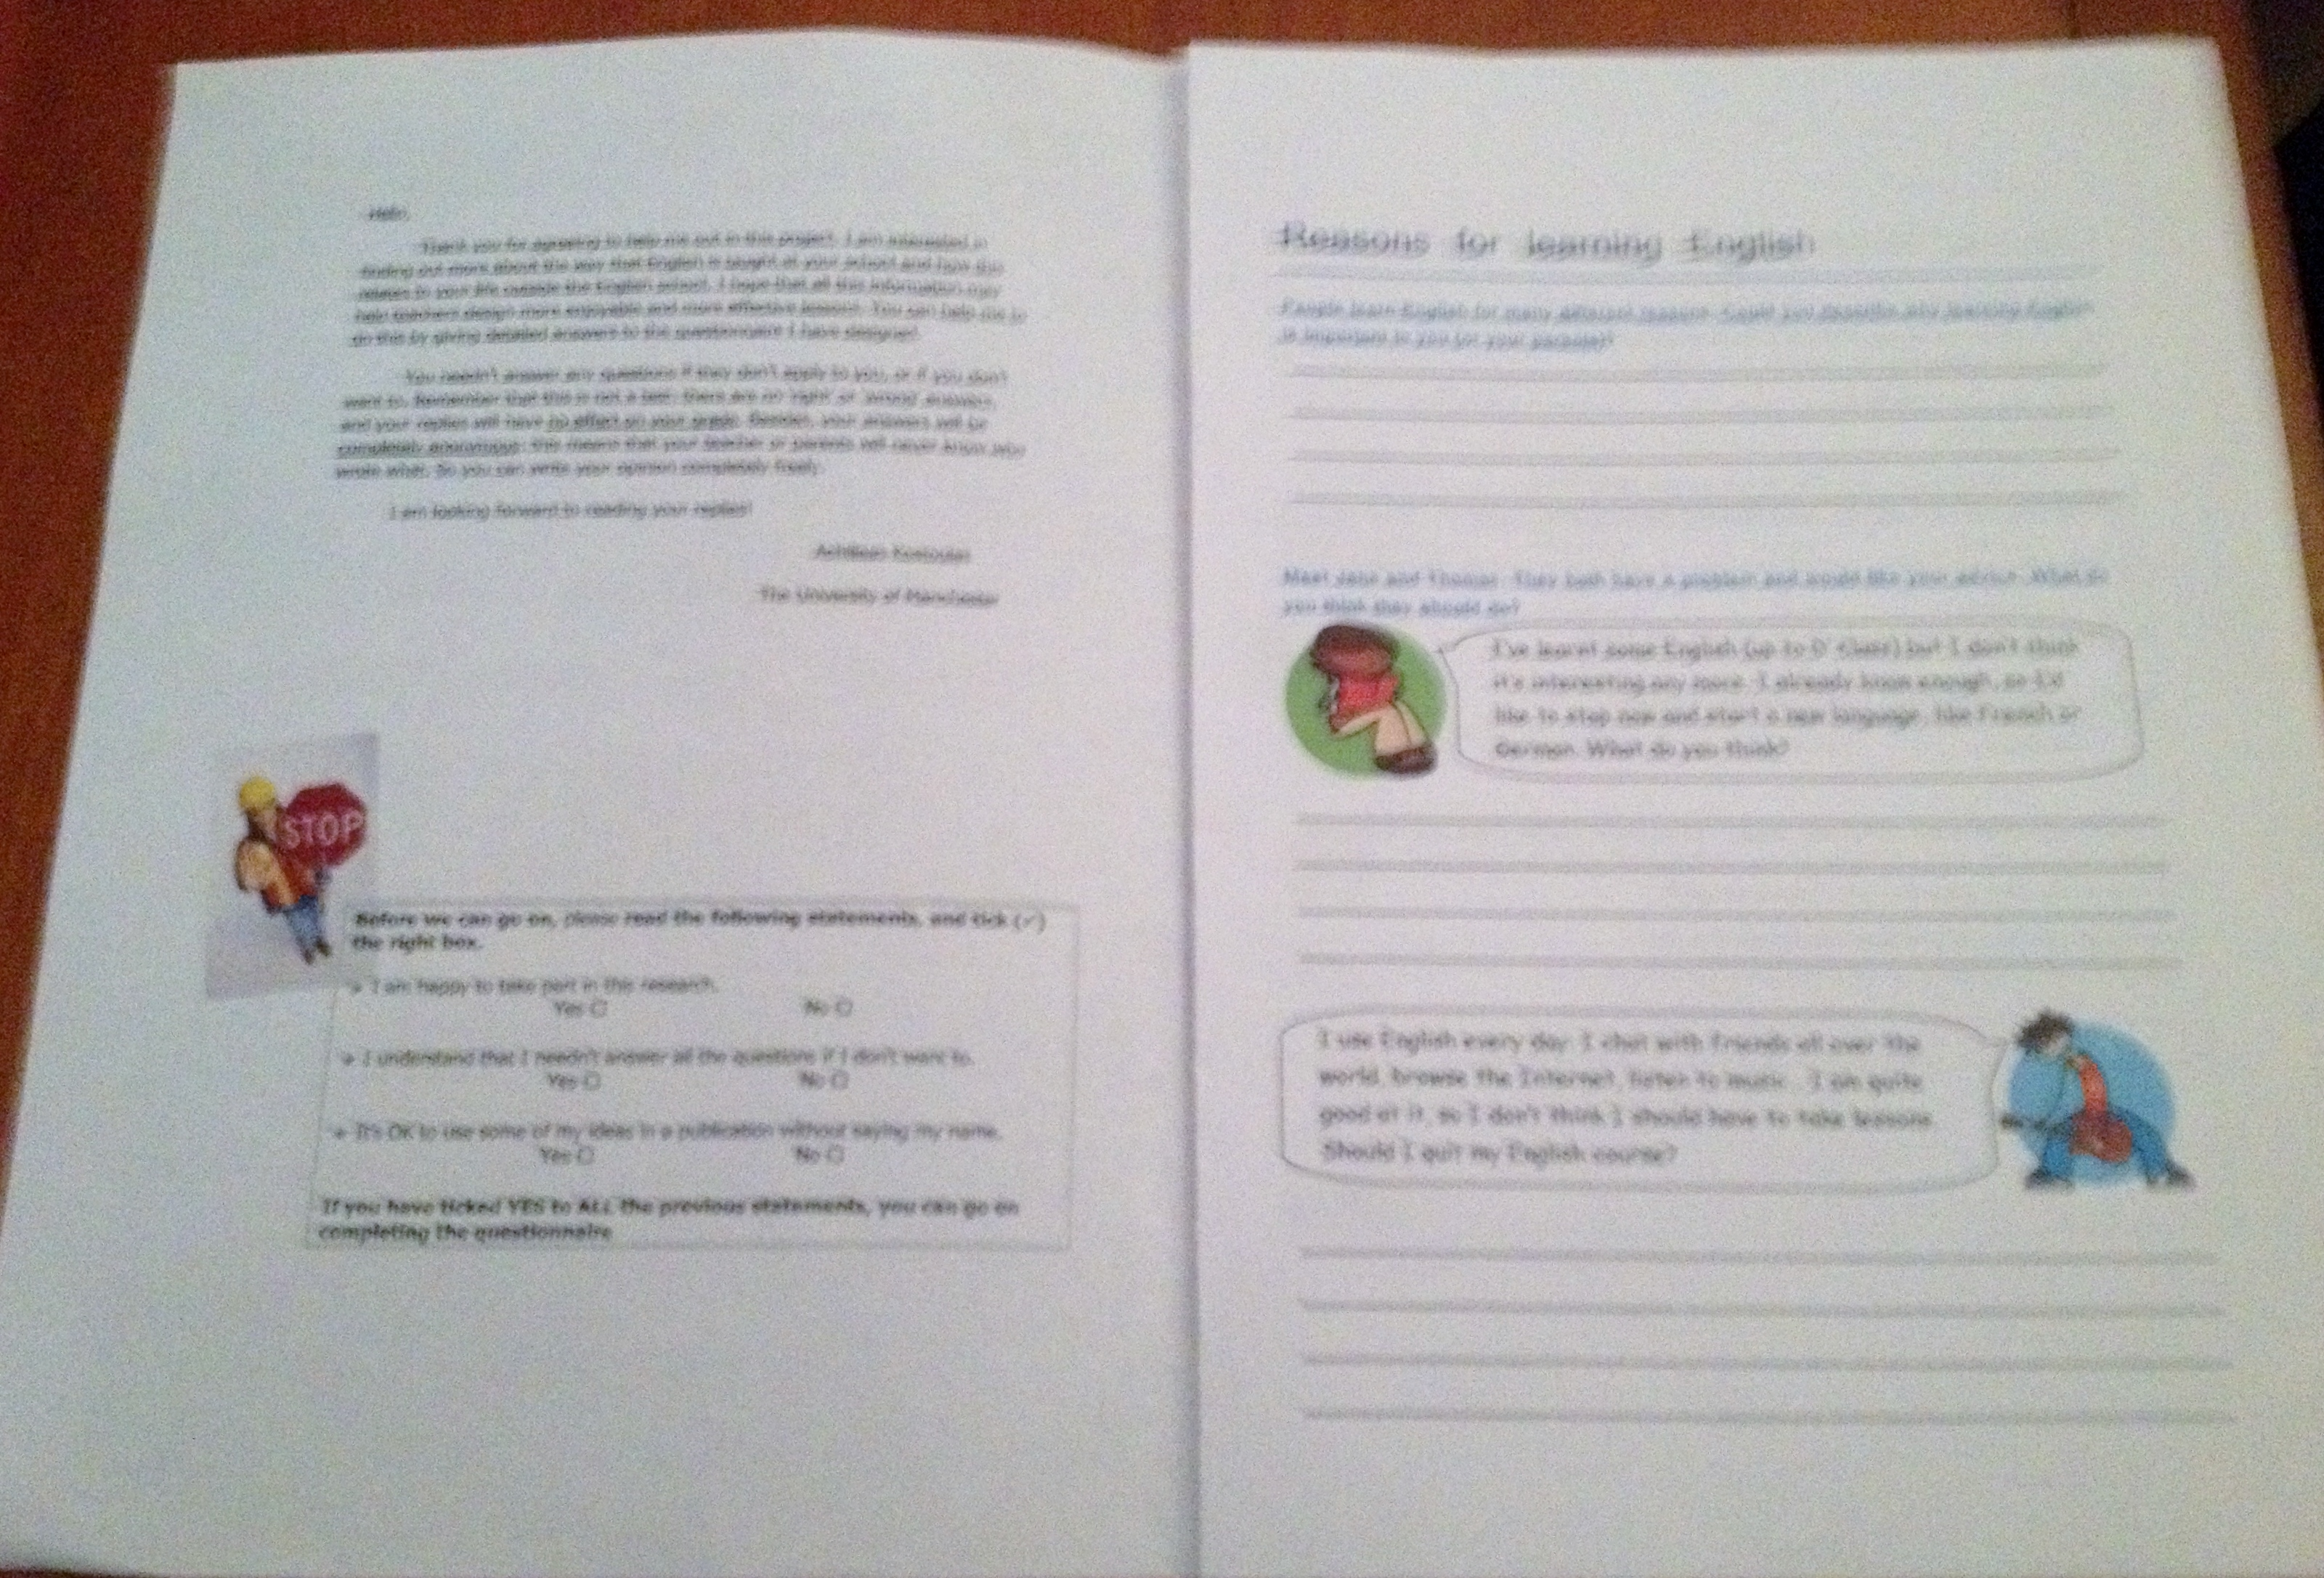 designing questionnaires in language education research